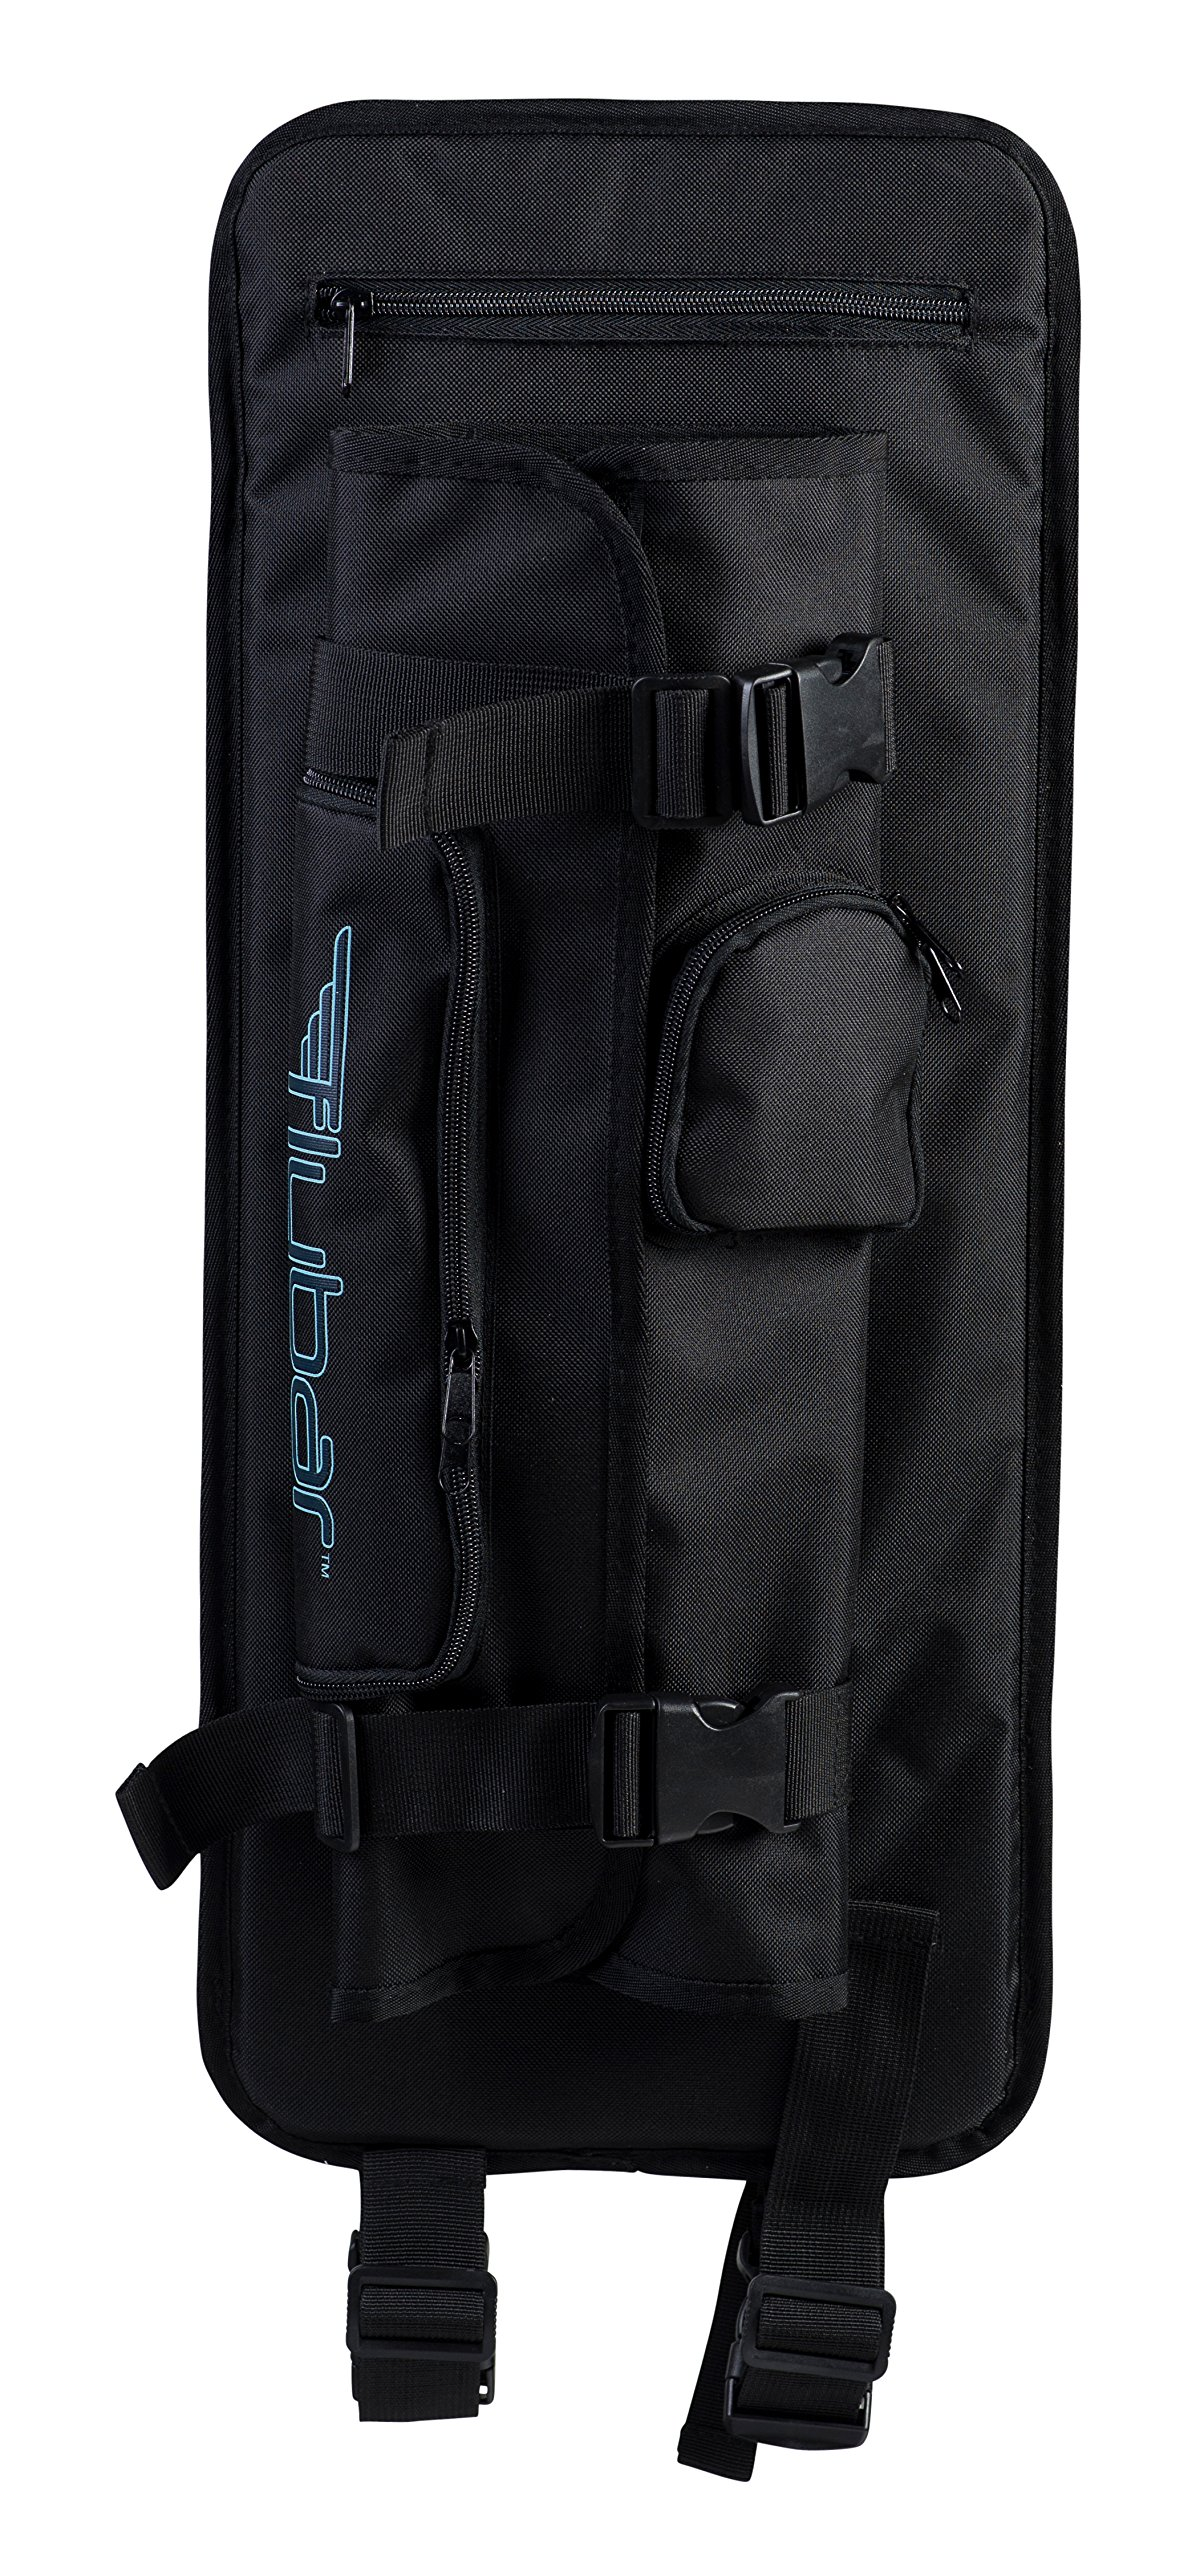 Flybar Extreme Pogo Stick Back Pack Carrier- Bring Your Pogo Stick With You Anywhere - Comfortable Shoulder Straps - Black by Flybar